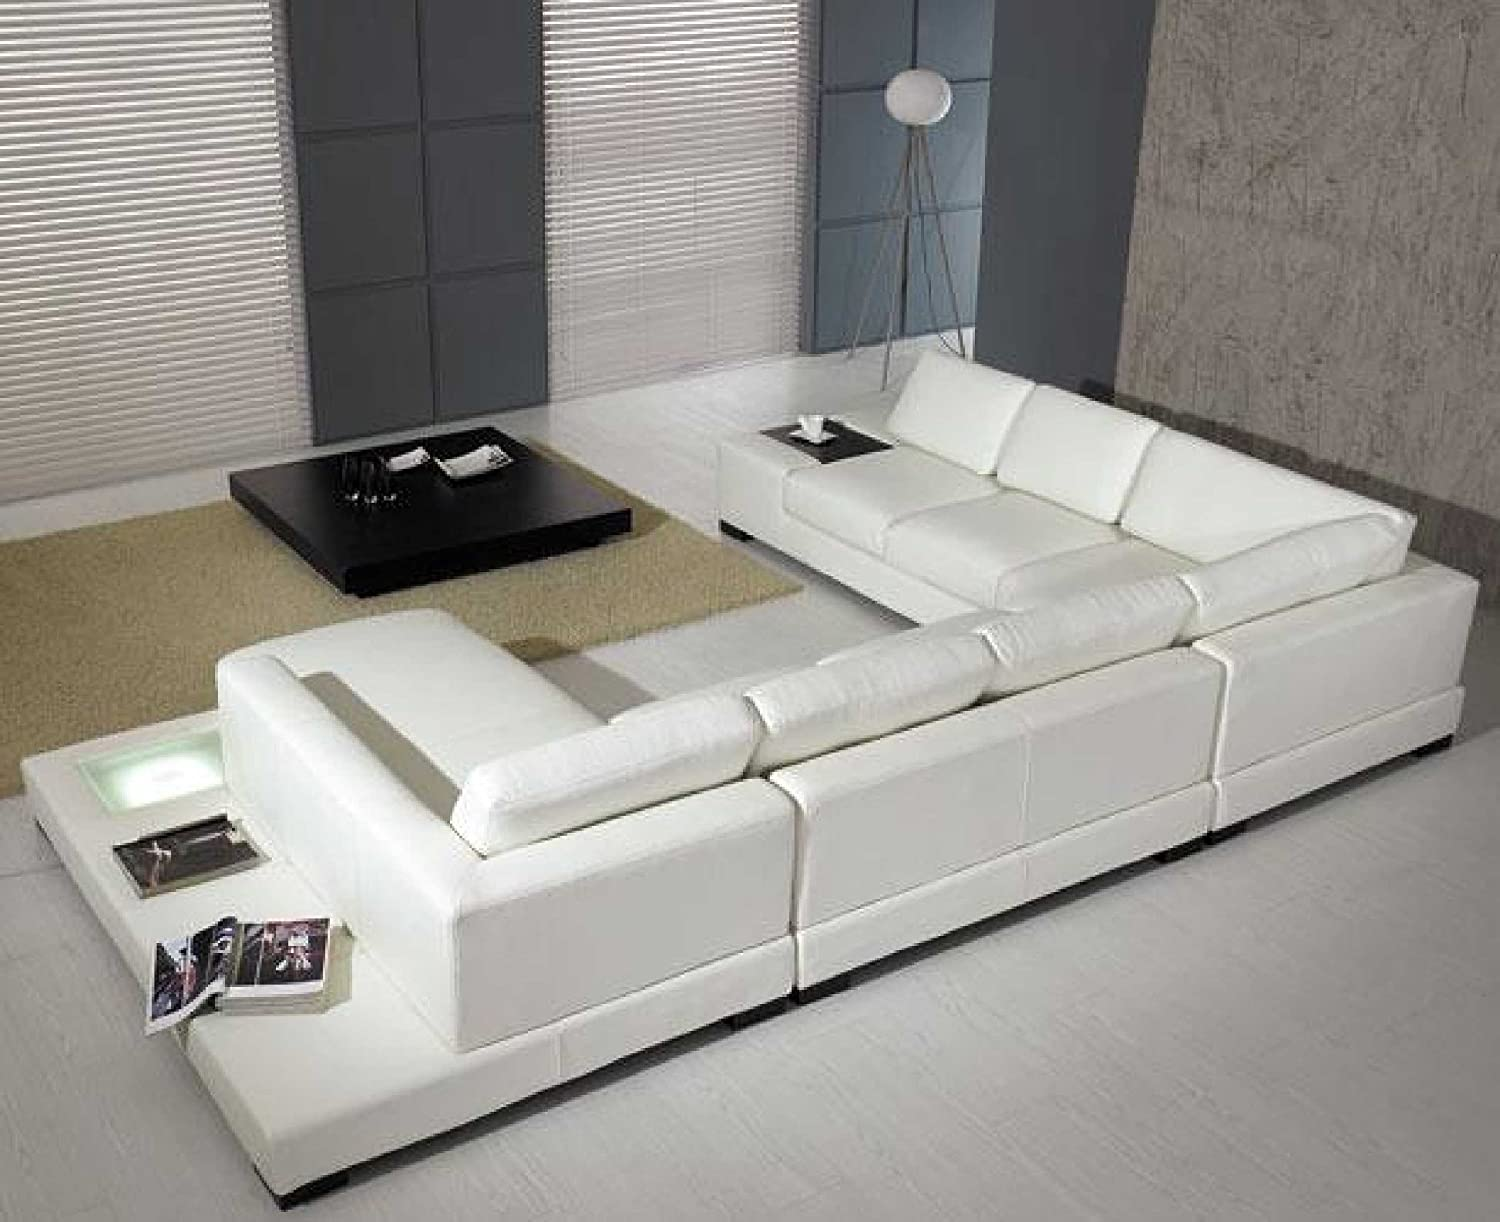 Genial Amazon.com: T35   White Bonded Leather Sectional Sofa Set With Light:  Kitchen U0026 Dining